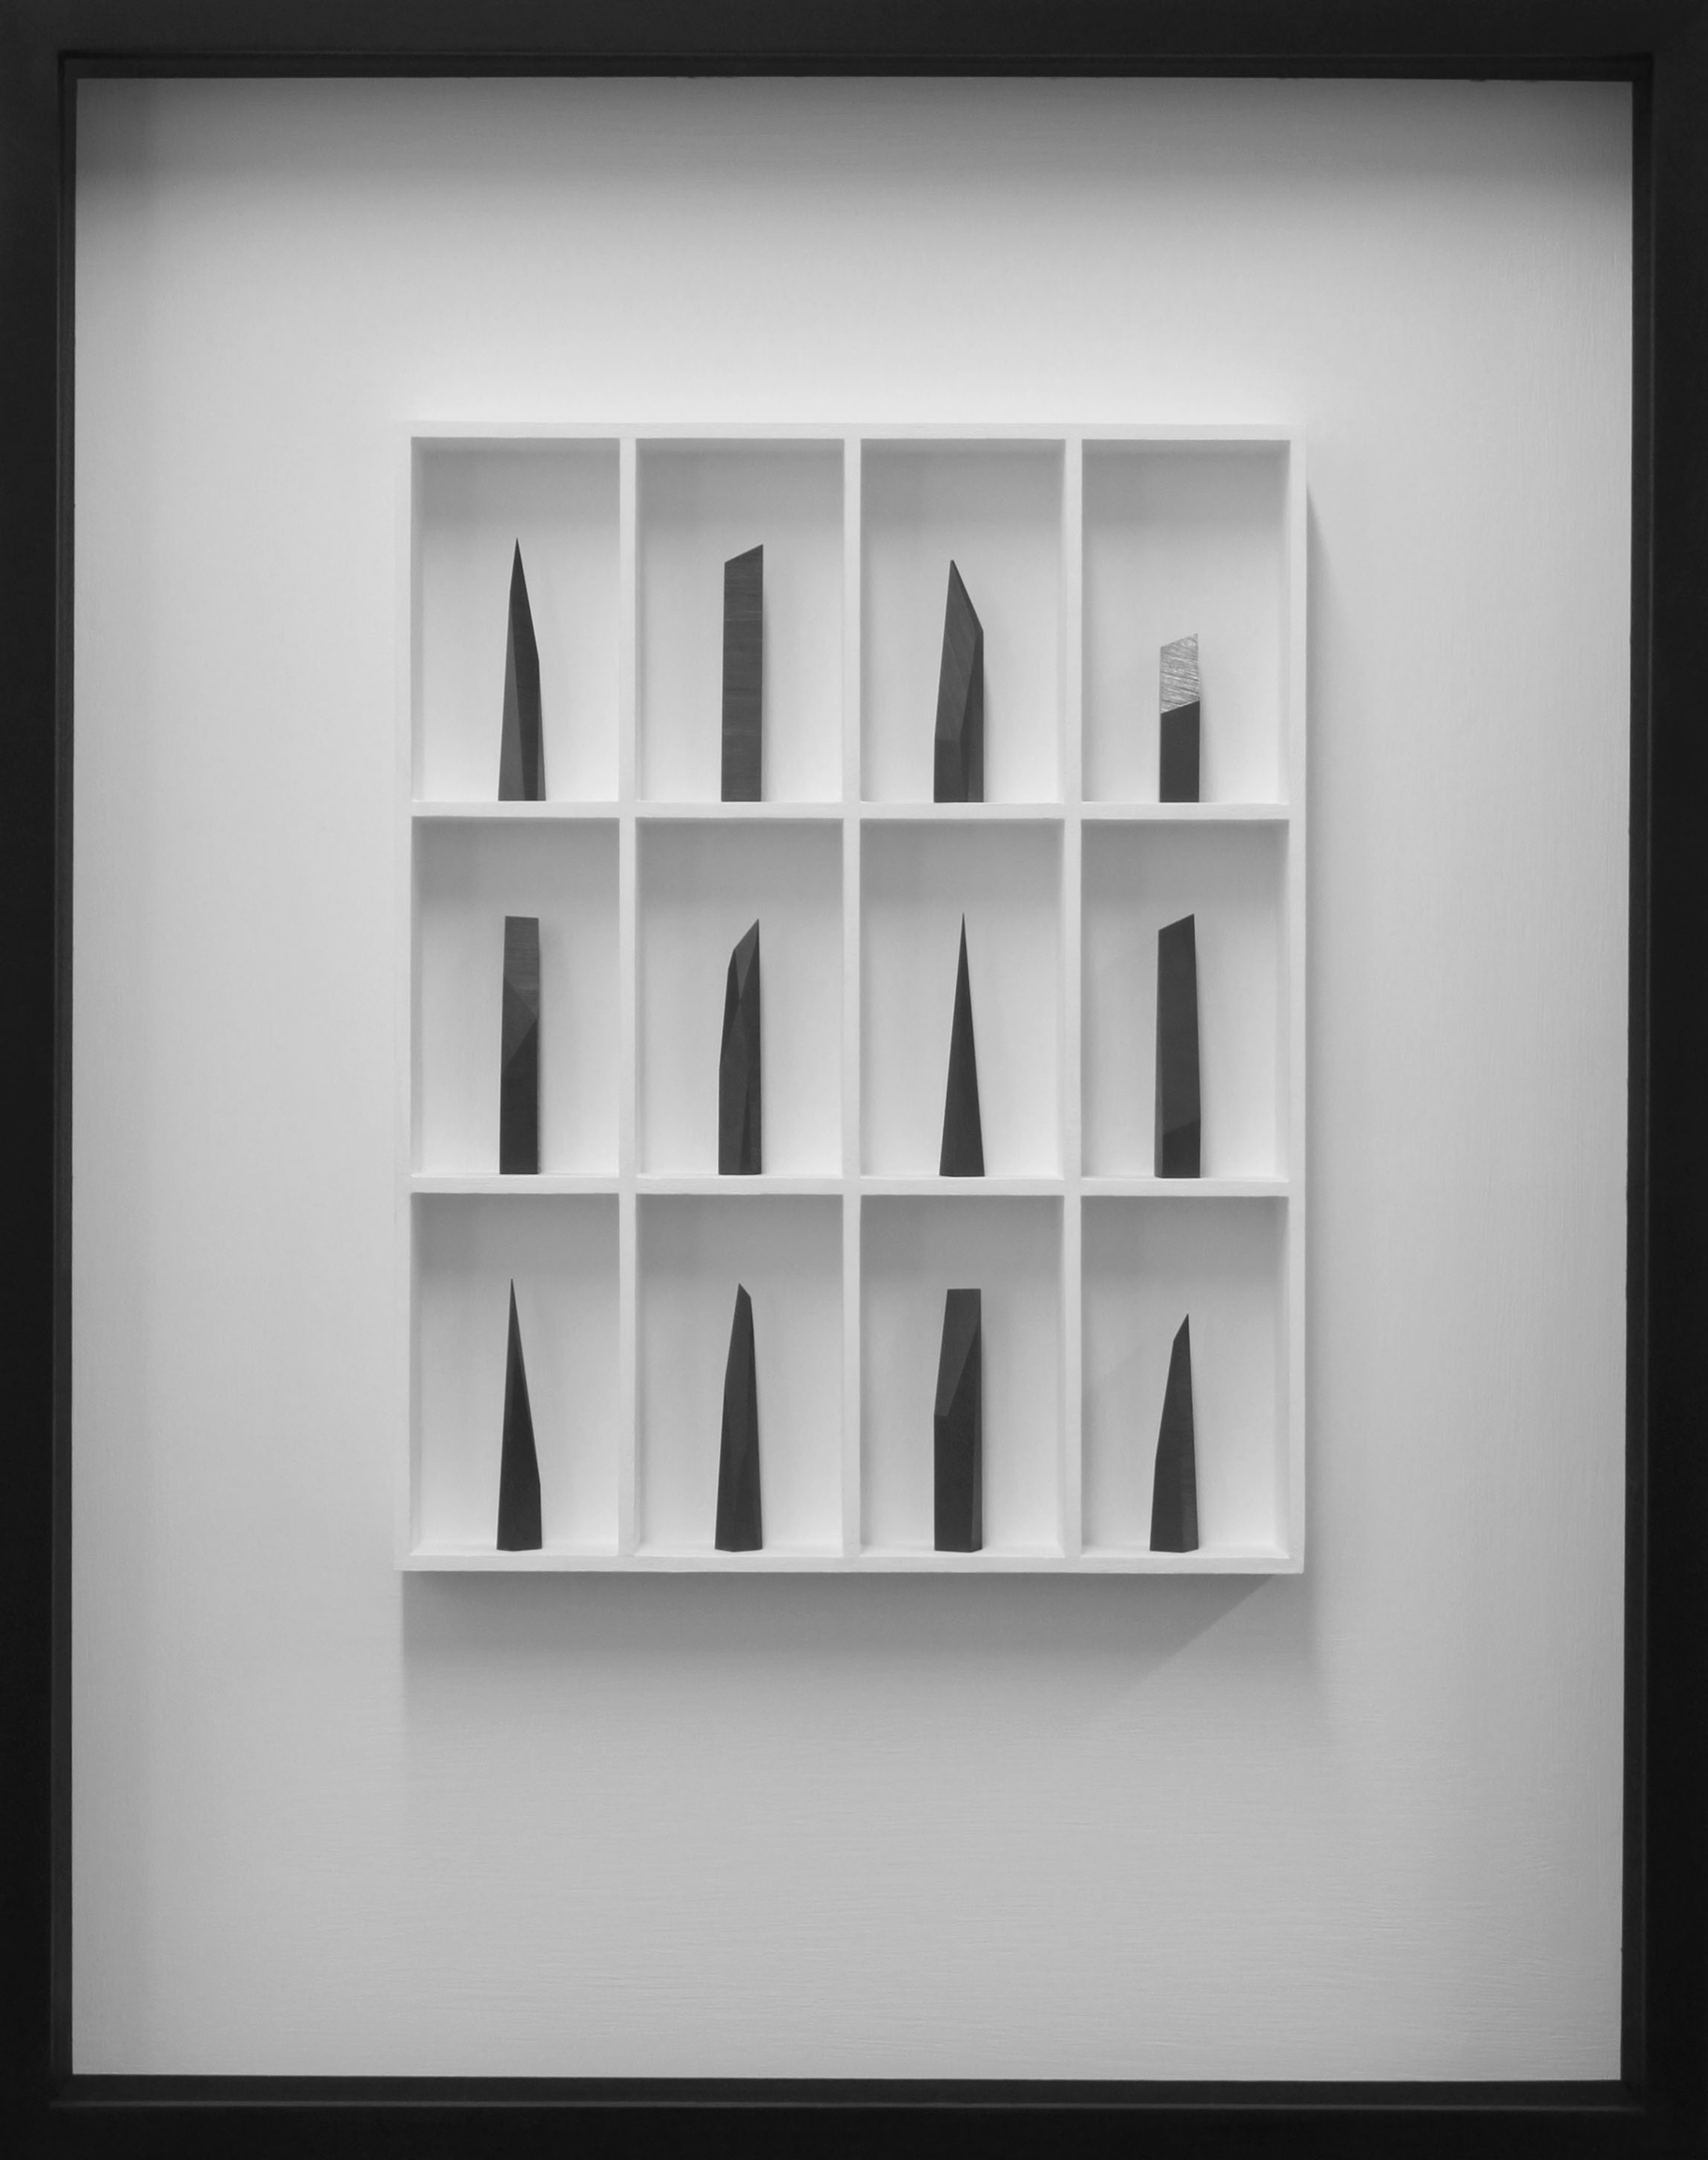 12 pieces - the edge of silence 60.5 x 7 x 77cm graphite in wood construction